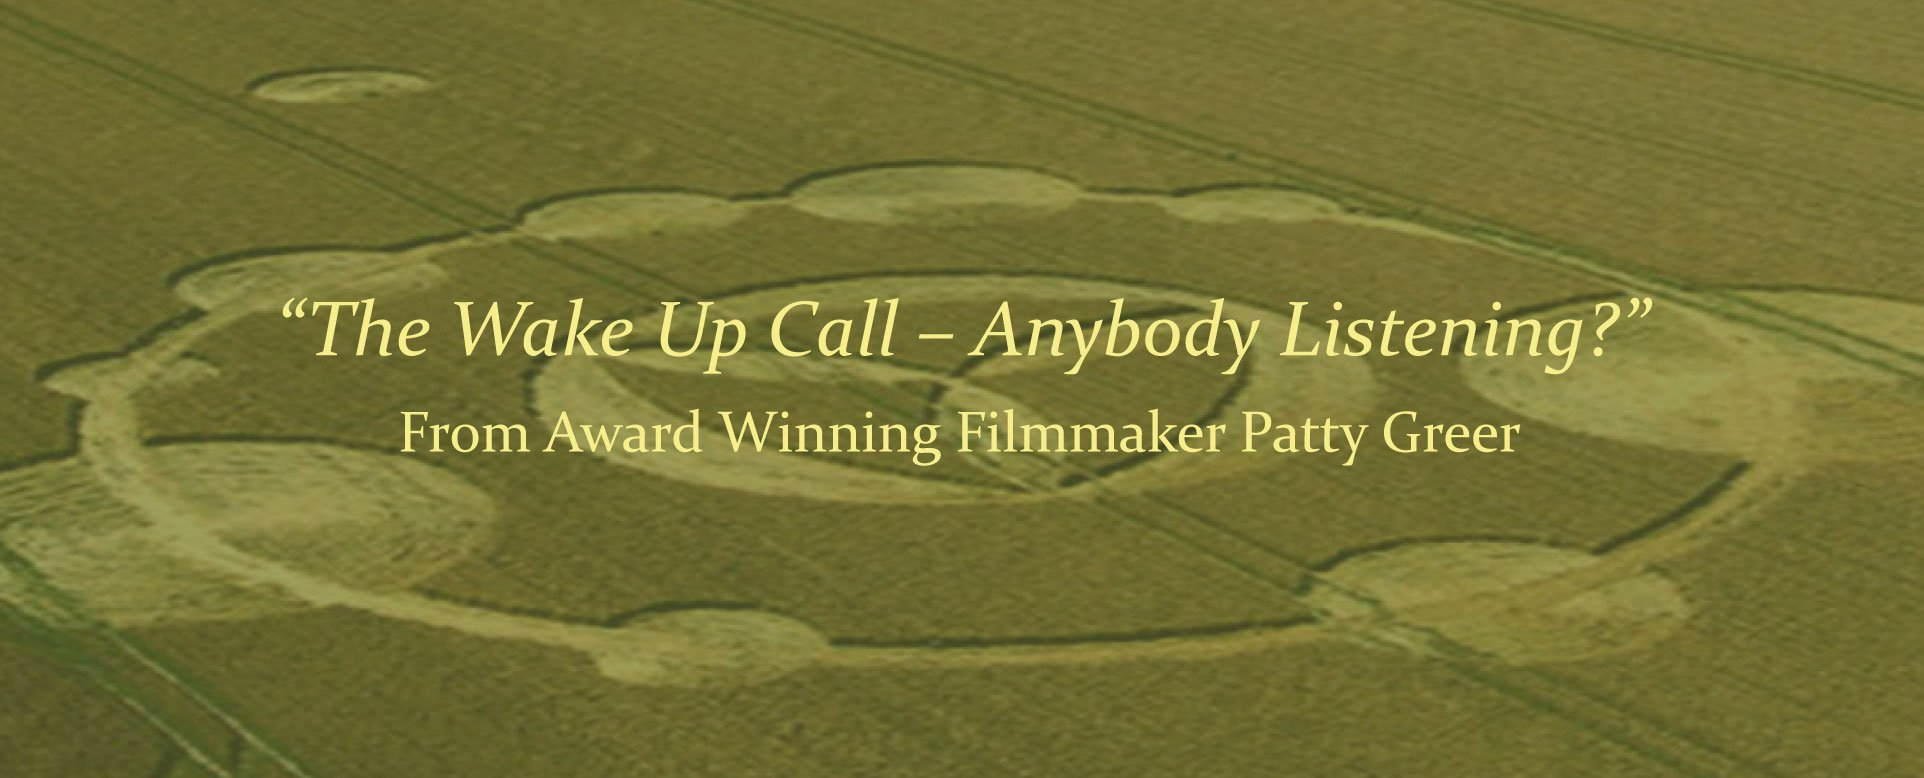 wake-up-call---anybody-listening---movie-page